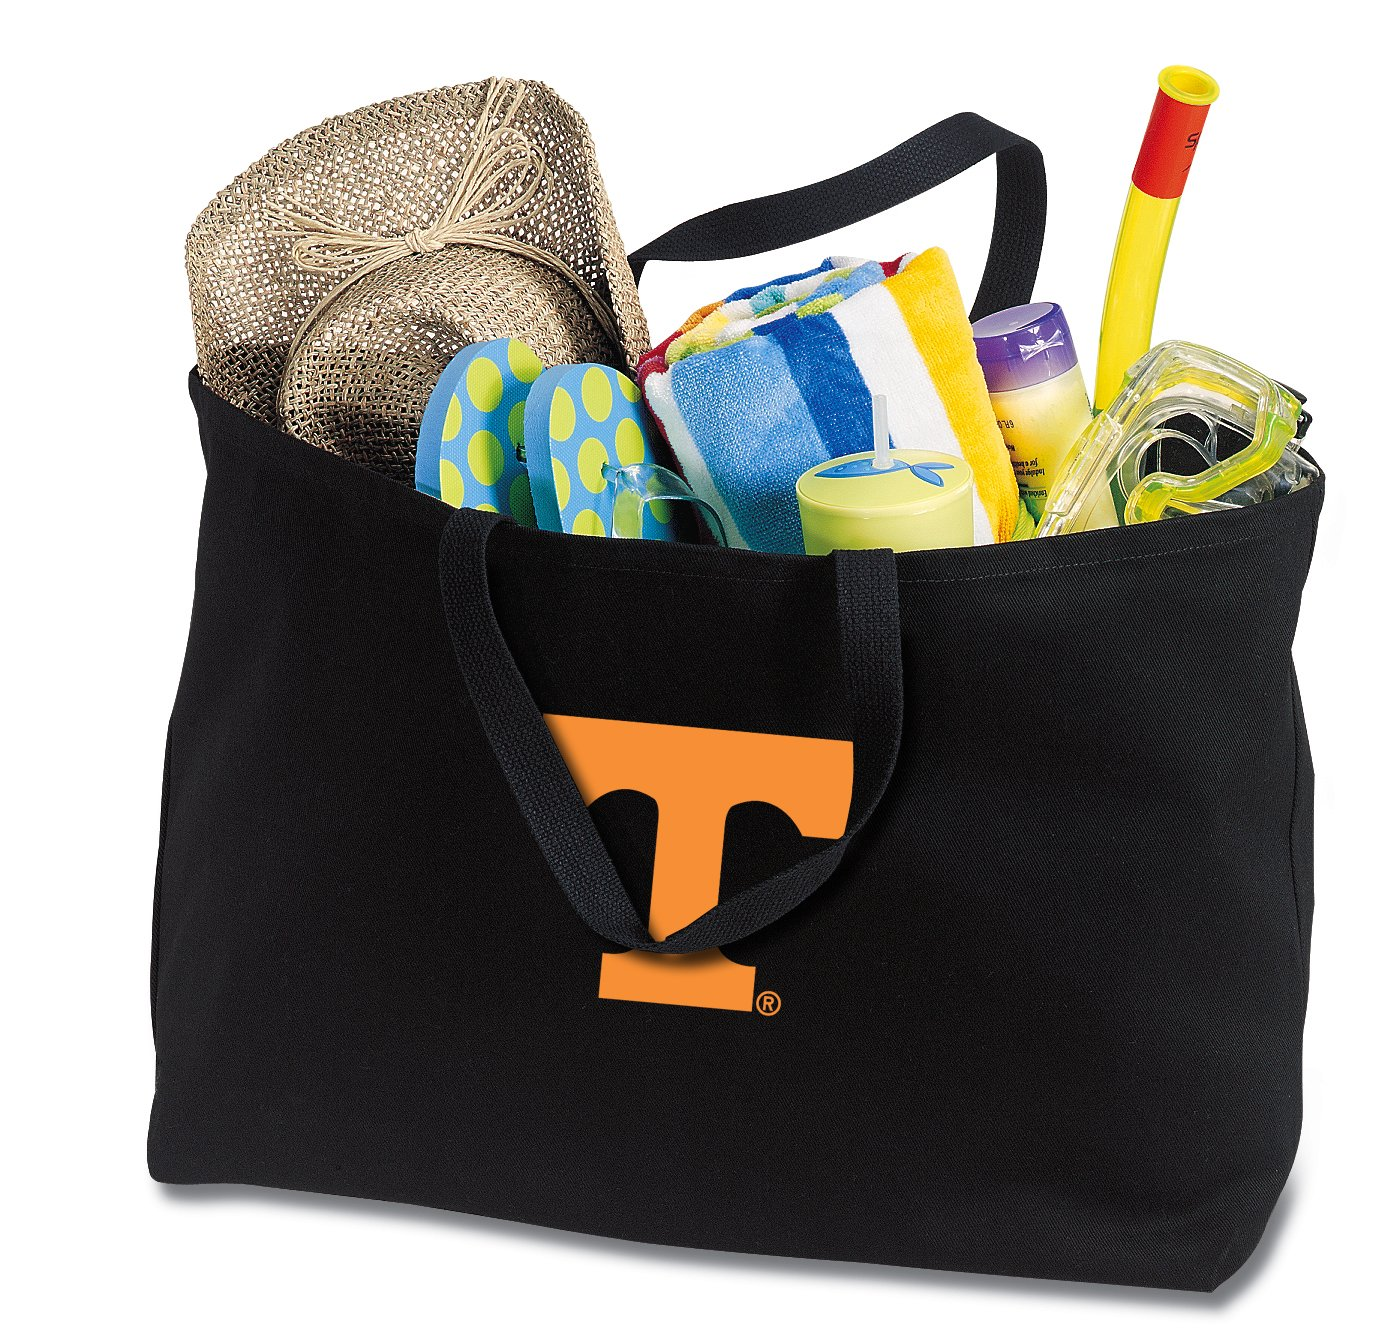 JUMBO Tennessee Vols Tote Bag or Large Canvas University of Tennessee Shopping Bag